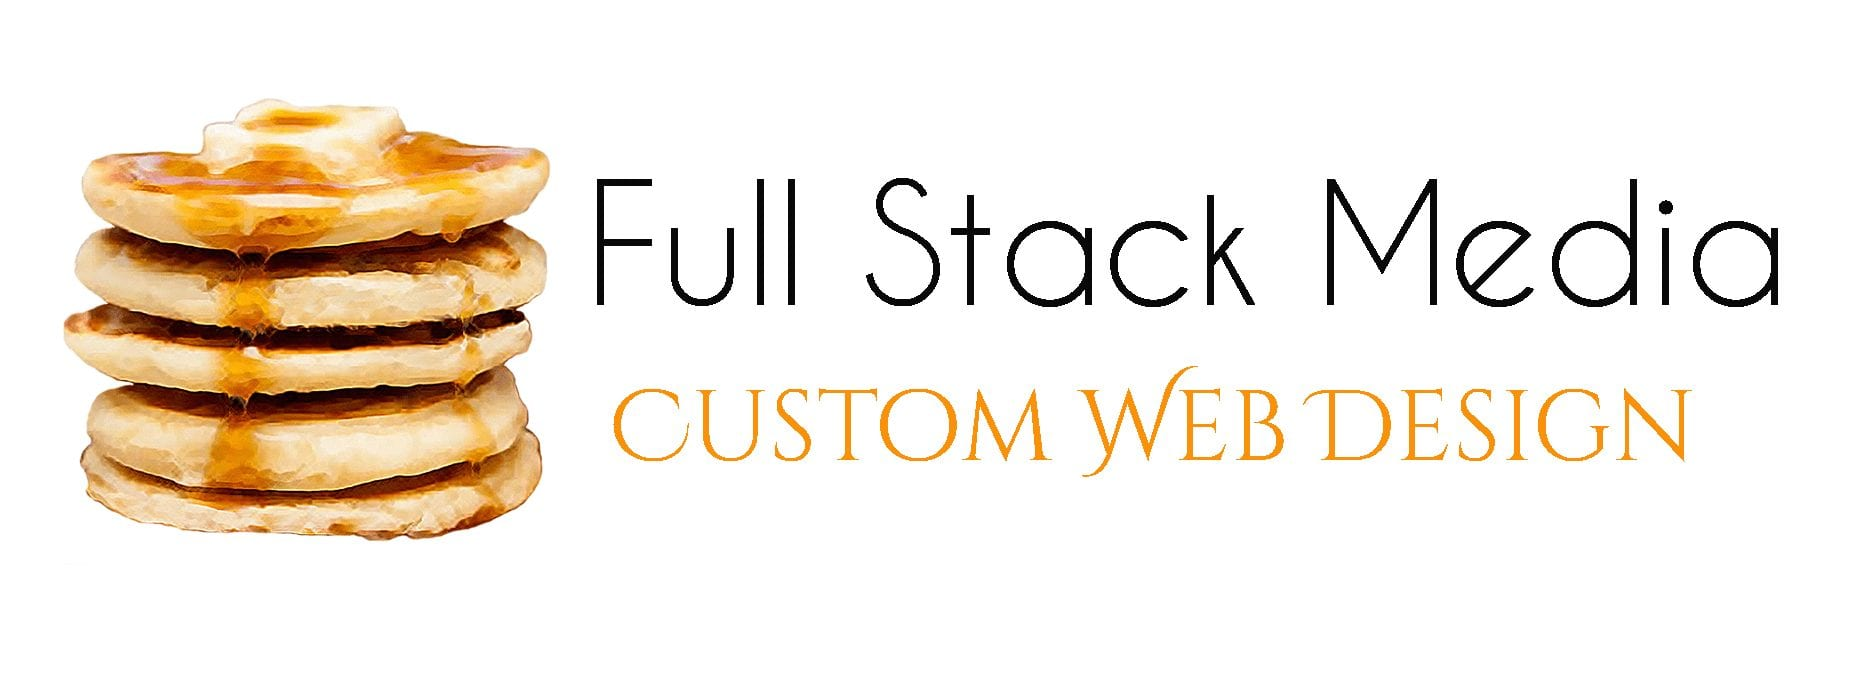 Full Stack Media custom web design logo